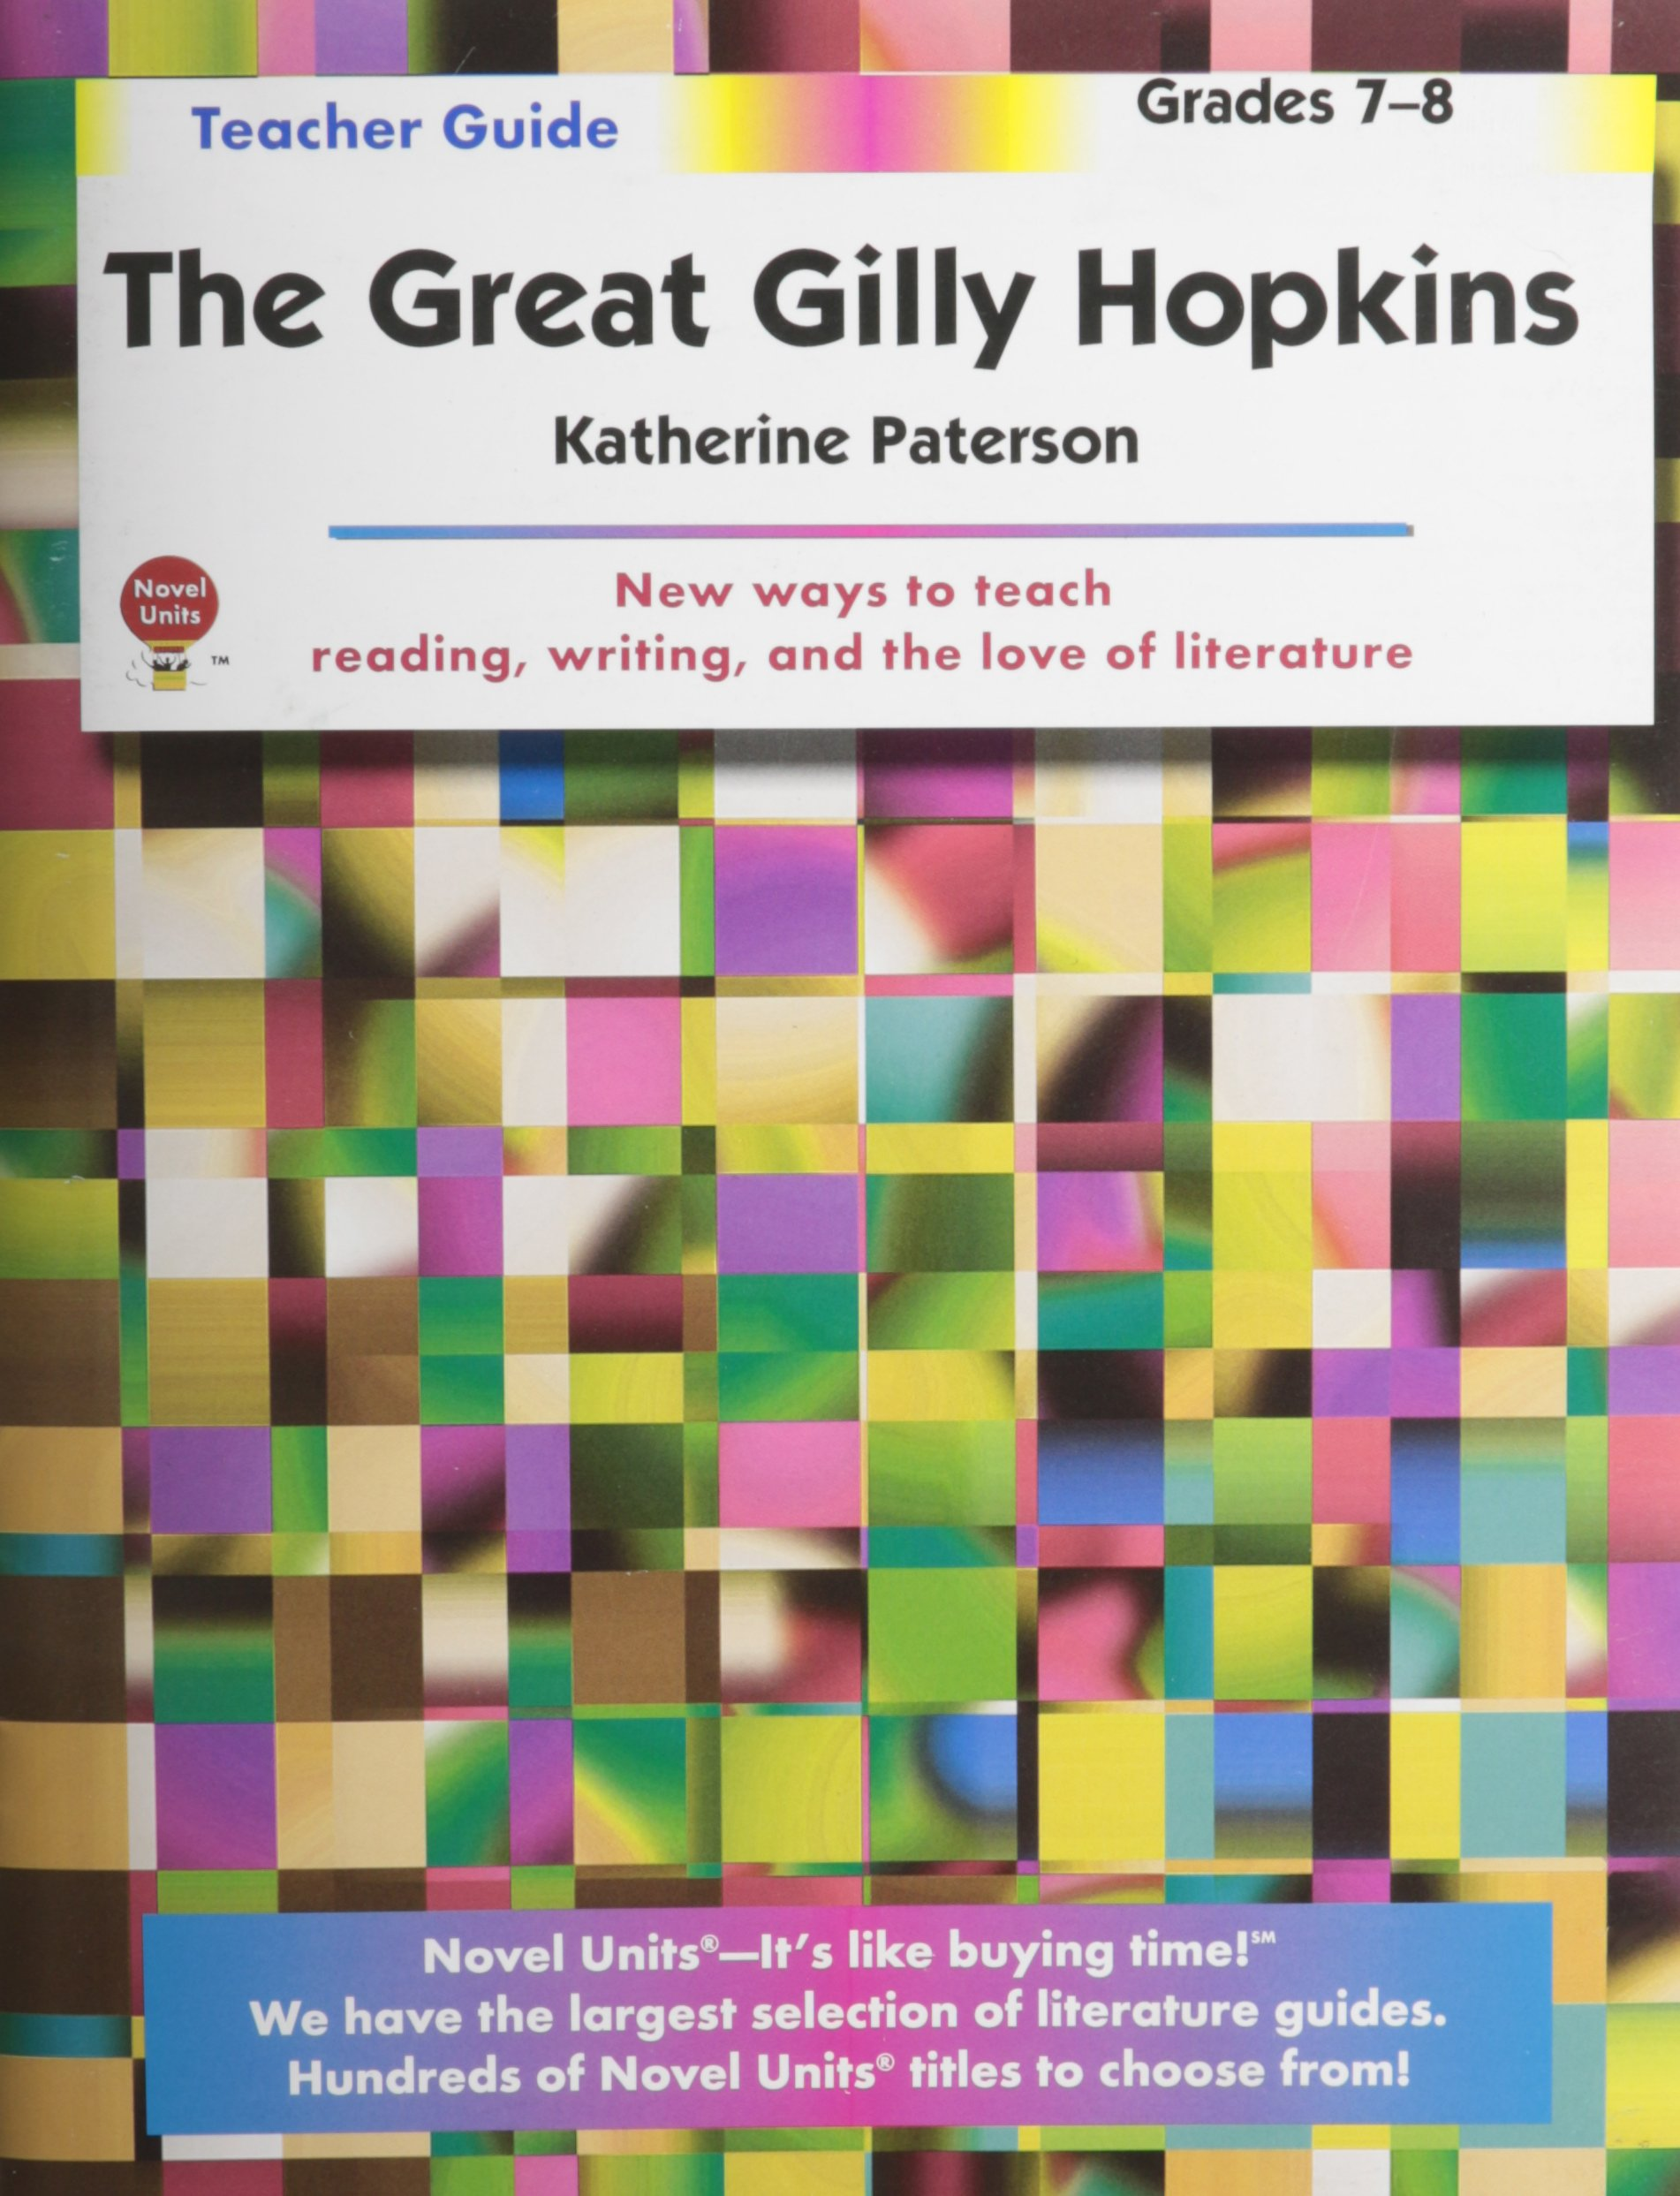 The great gilly hopkins teacher guide by novel units inc the great gilly hopkins teacher guide by novel units inc novel units inc 9781561374281 amazon books fandeluxe Images